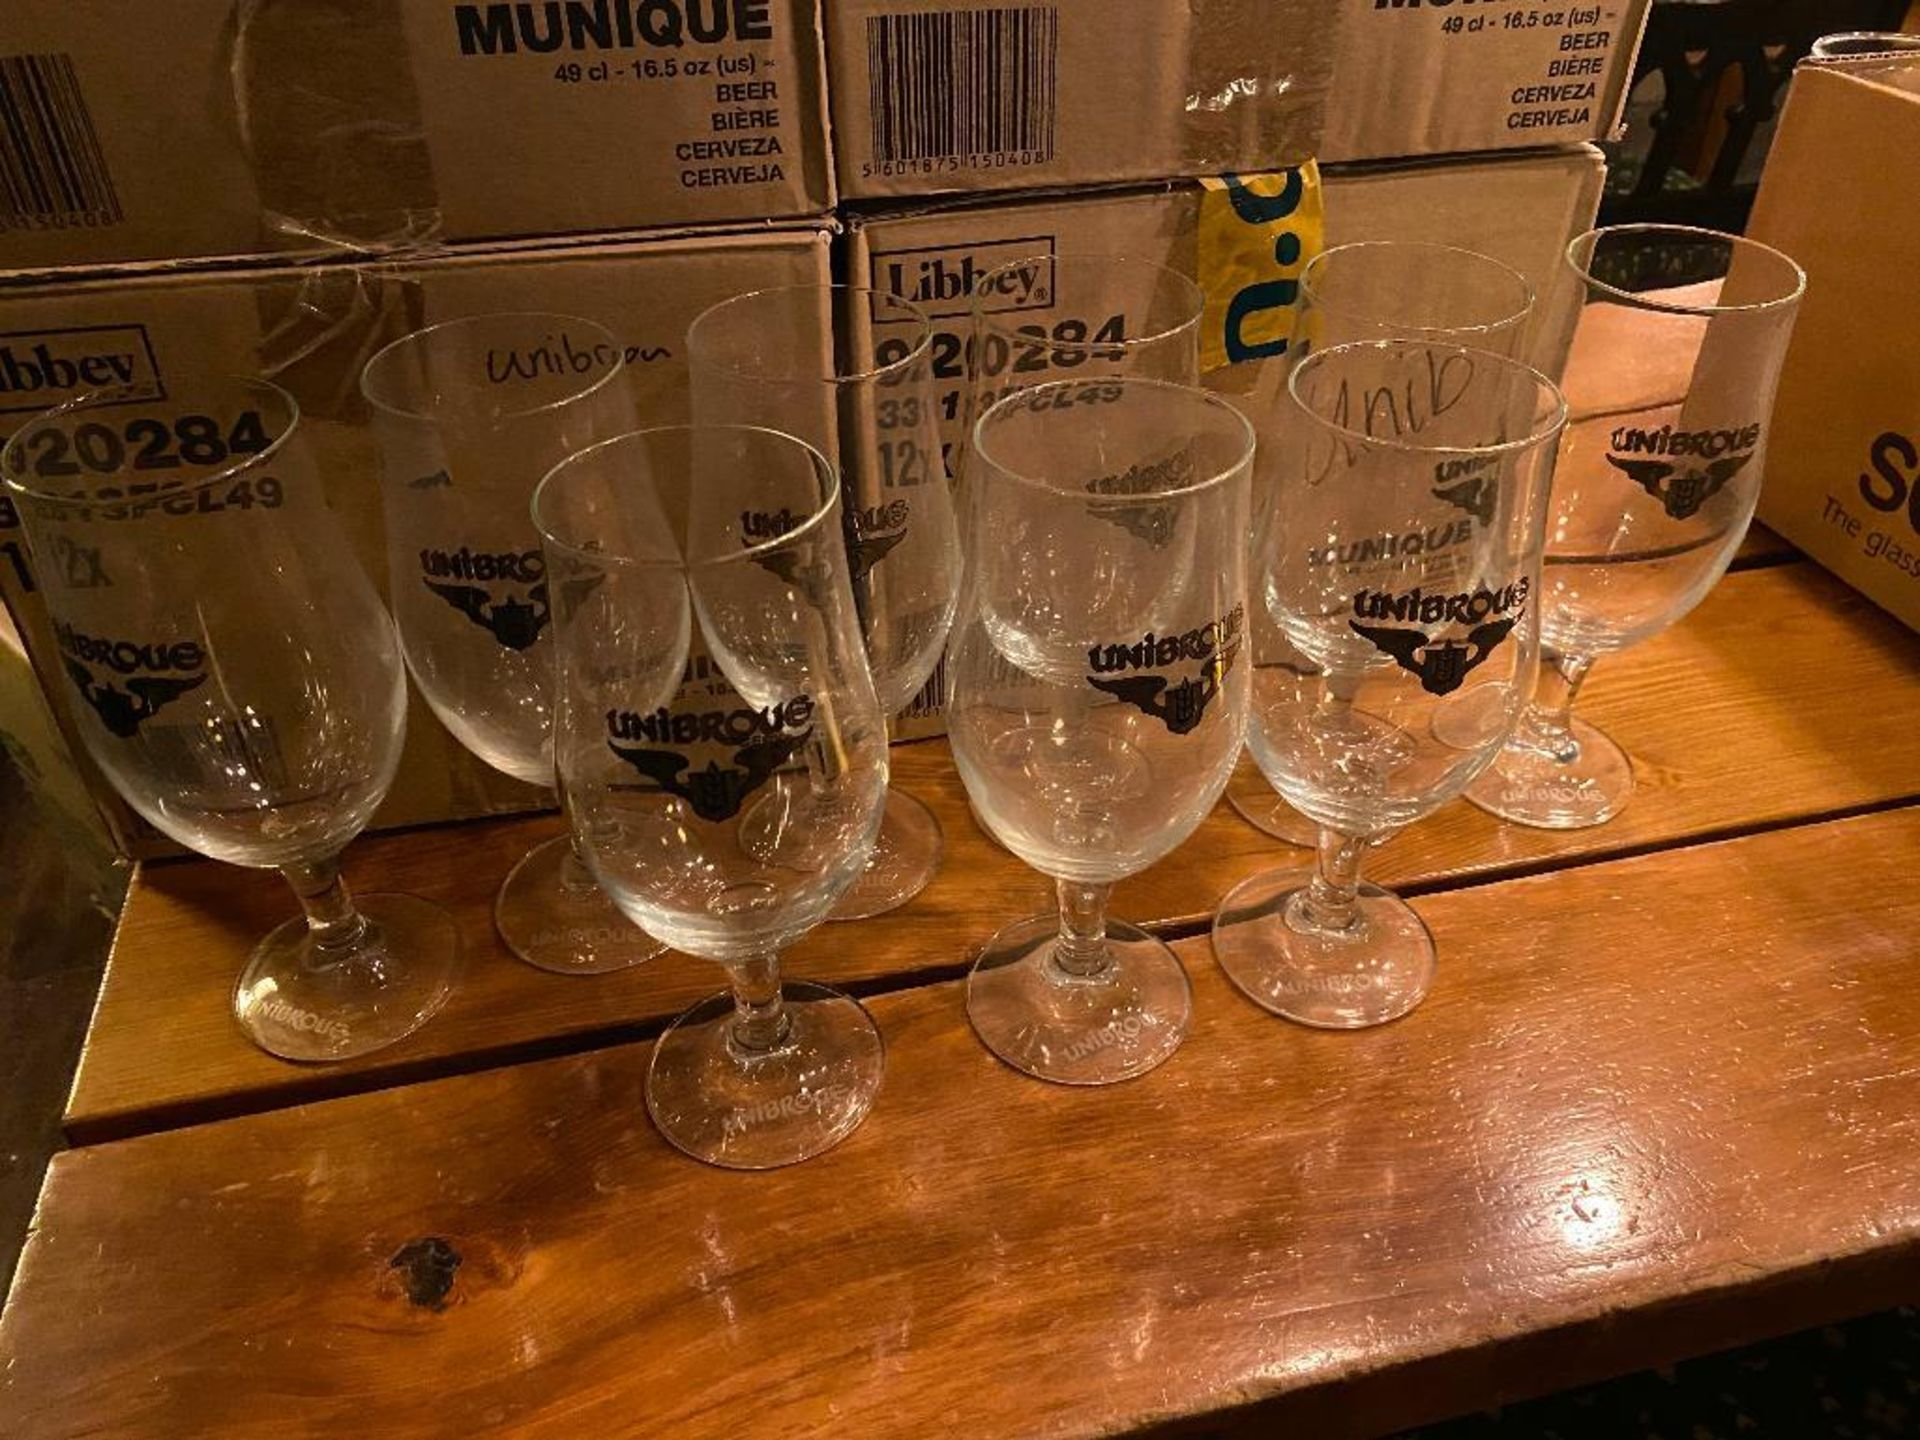 LARGE LOT OF UNIBROUE BEER GLASSES - Image 3 of 3